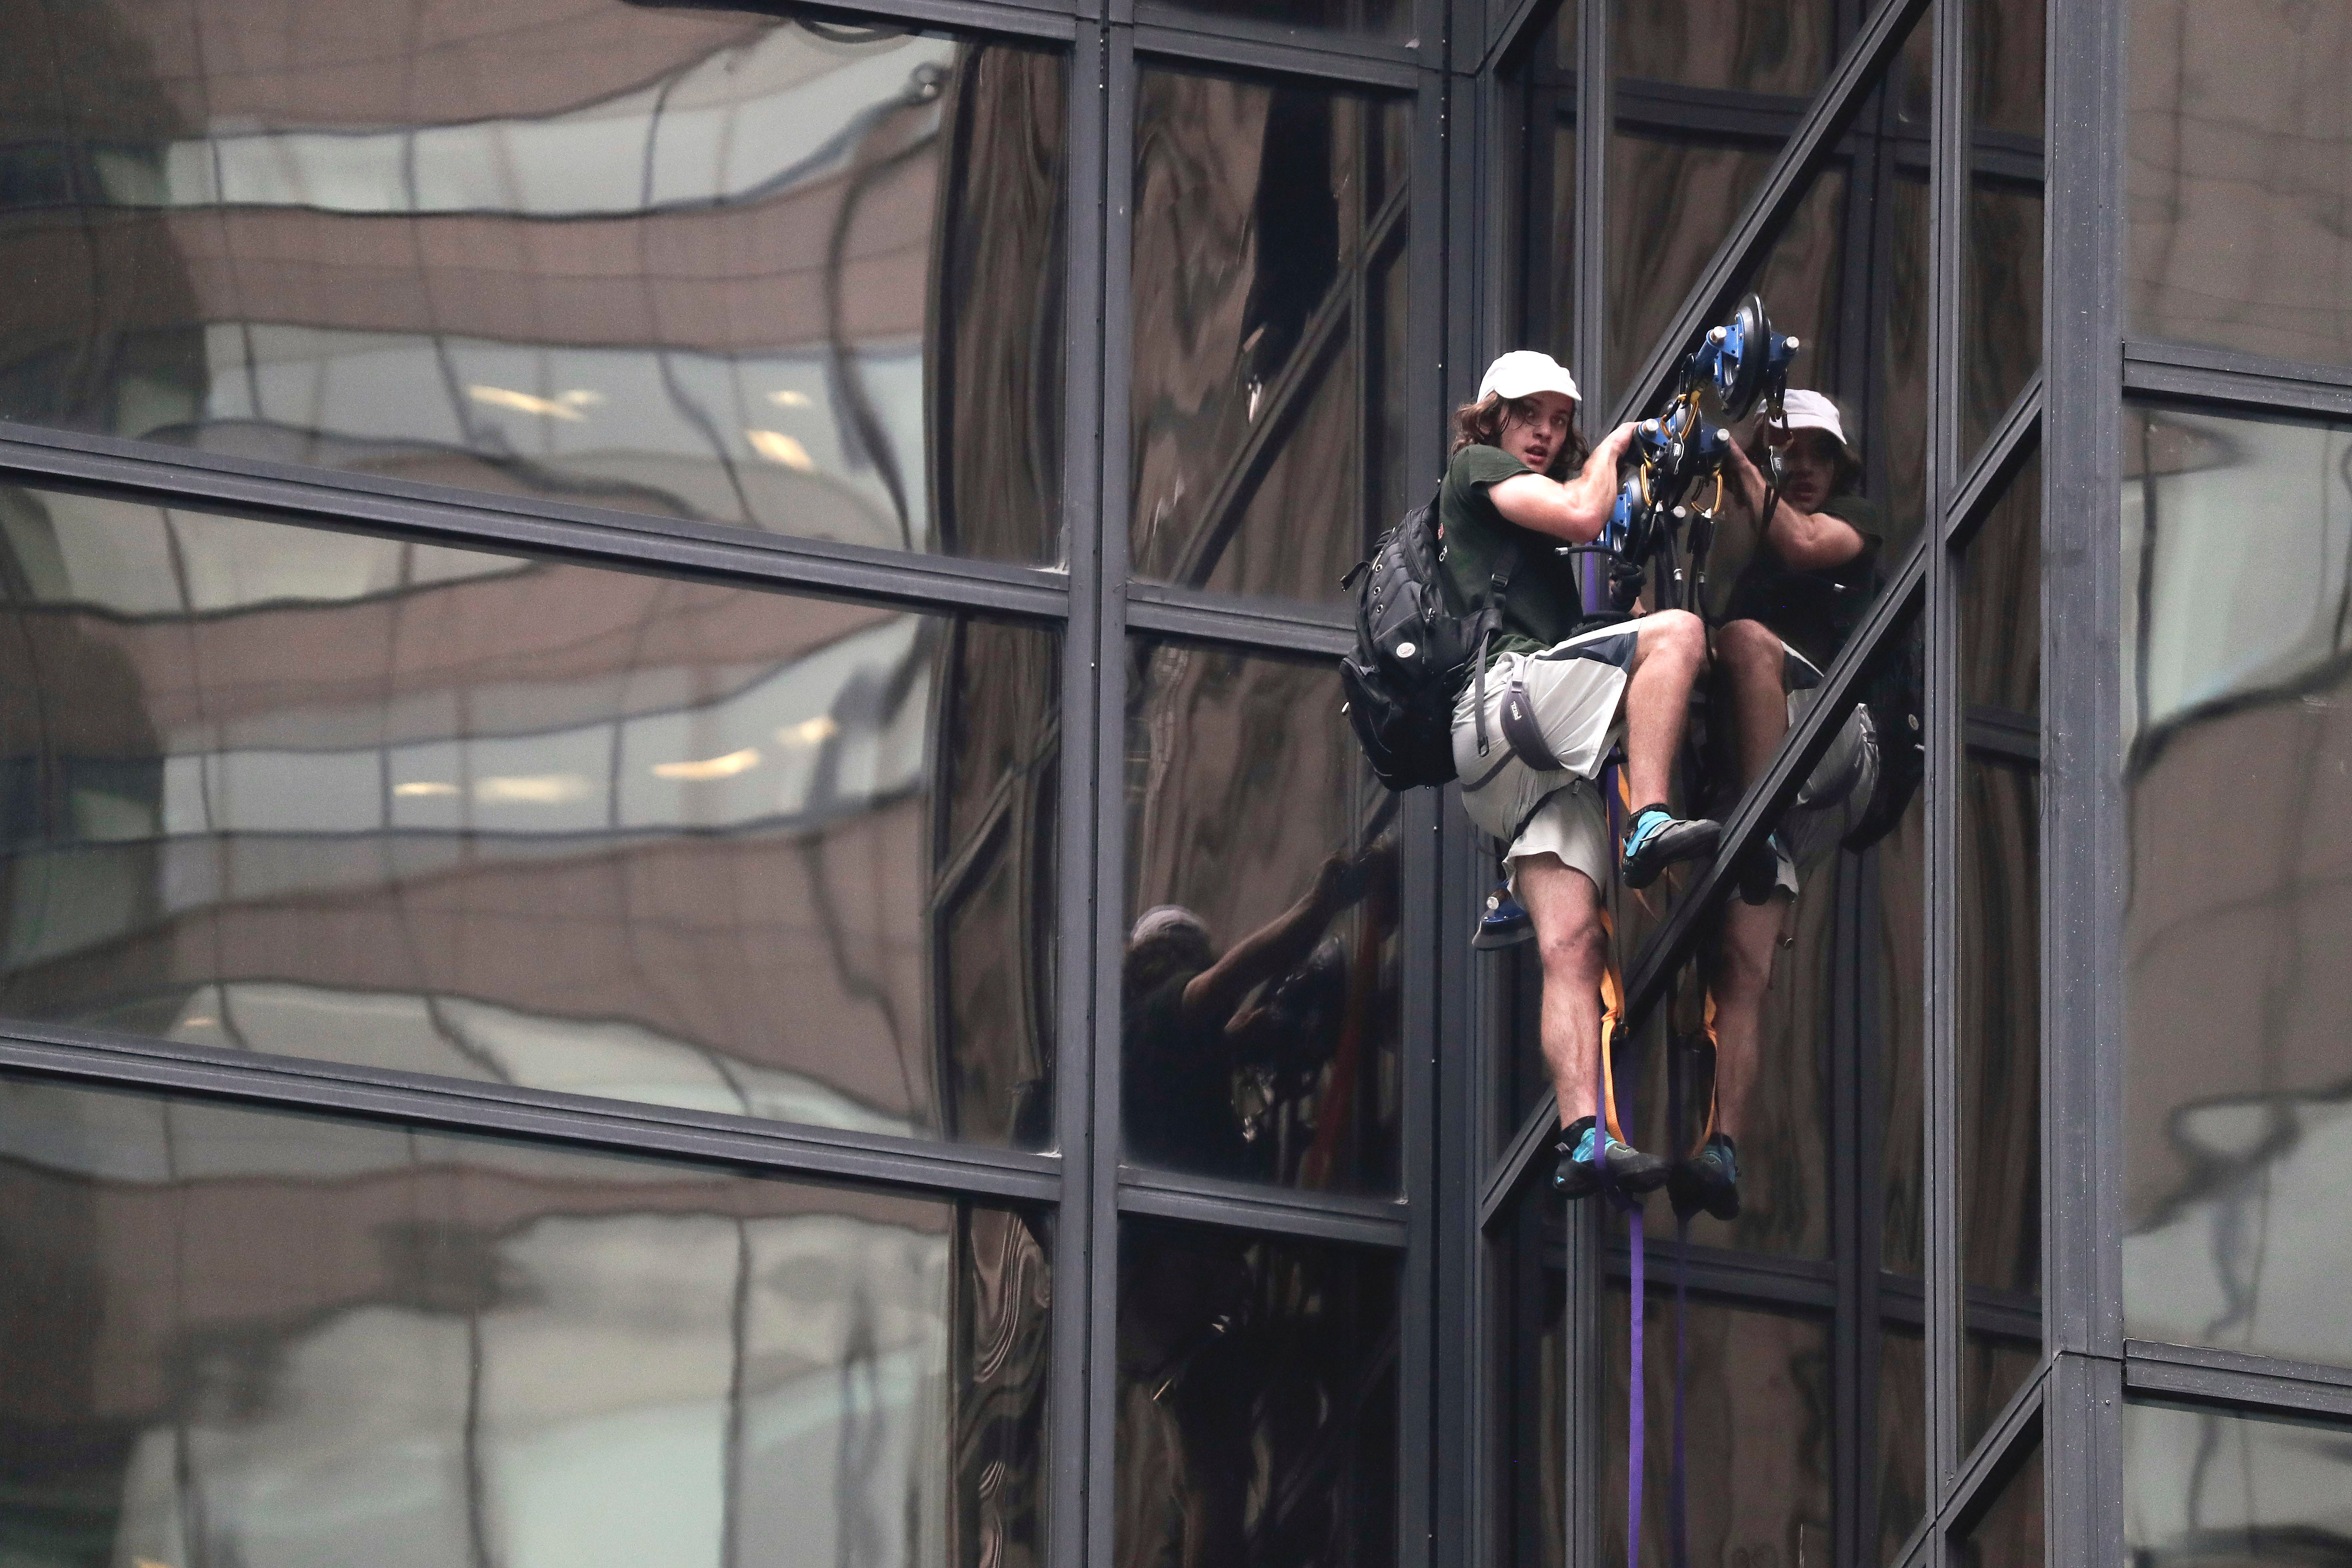 How That Guy Scaled Trump Tower Without Going Splat